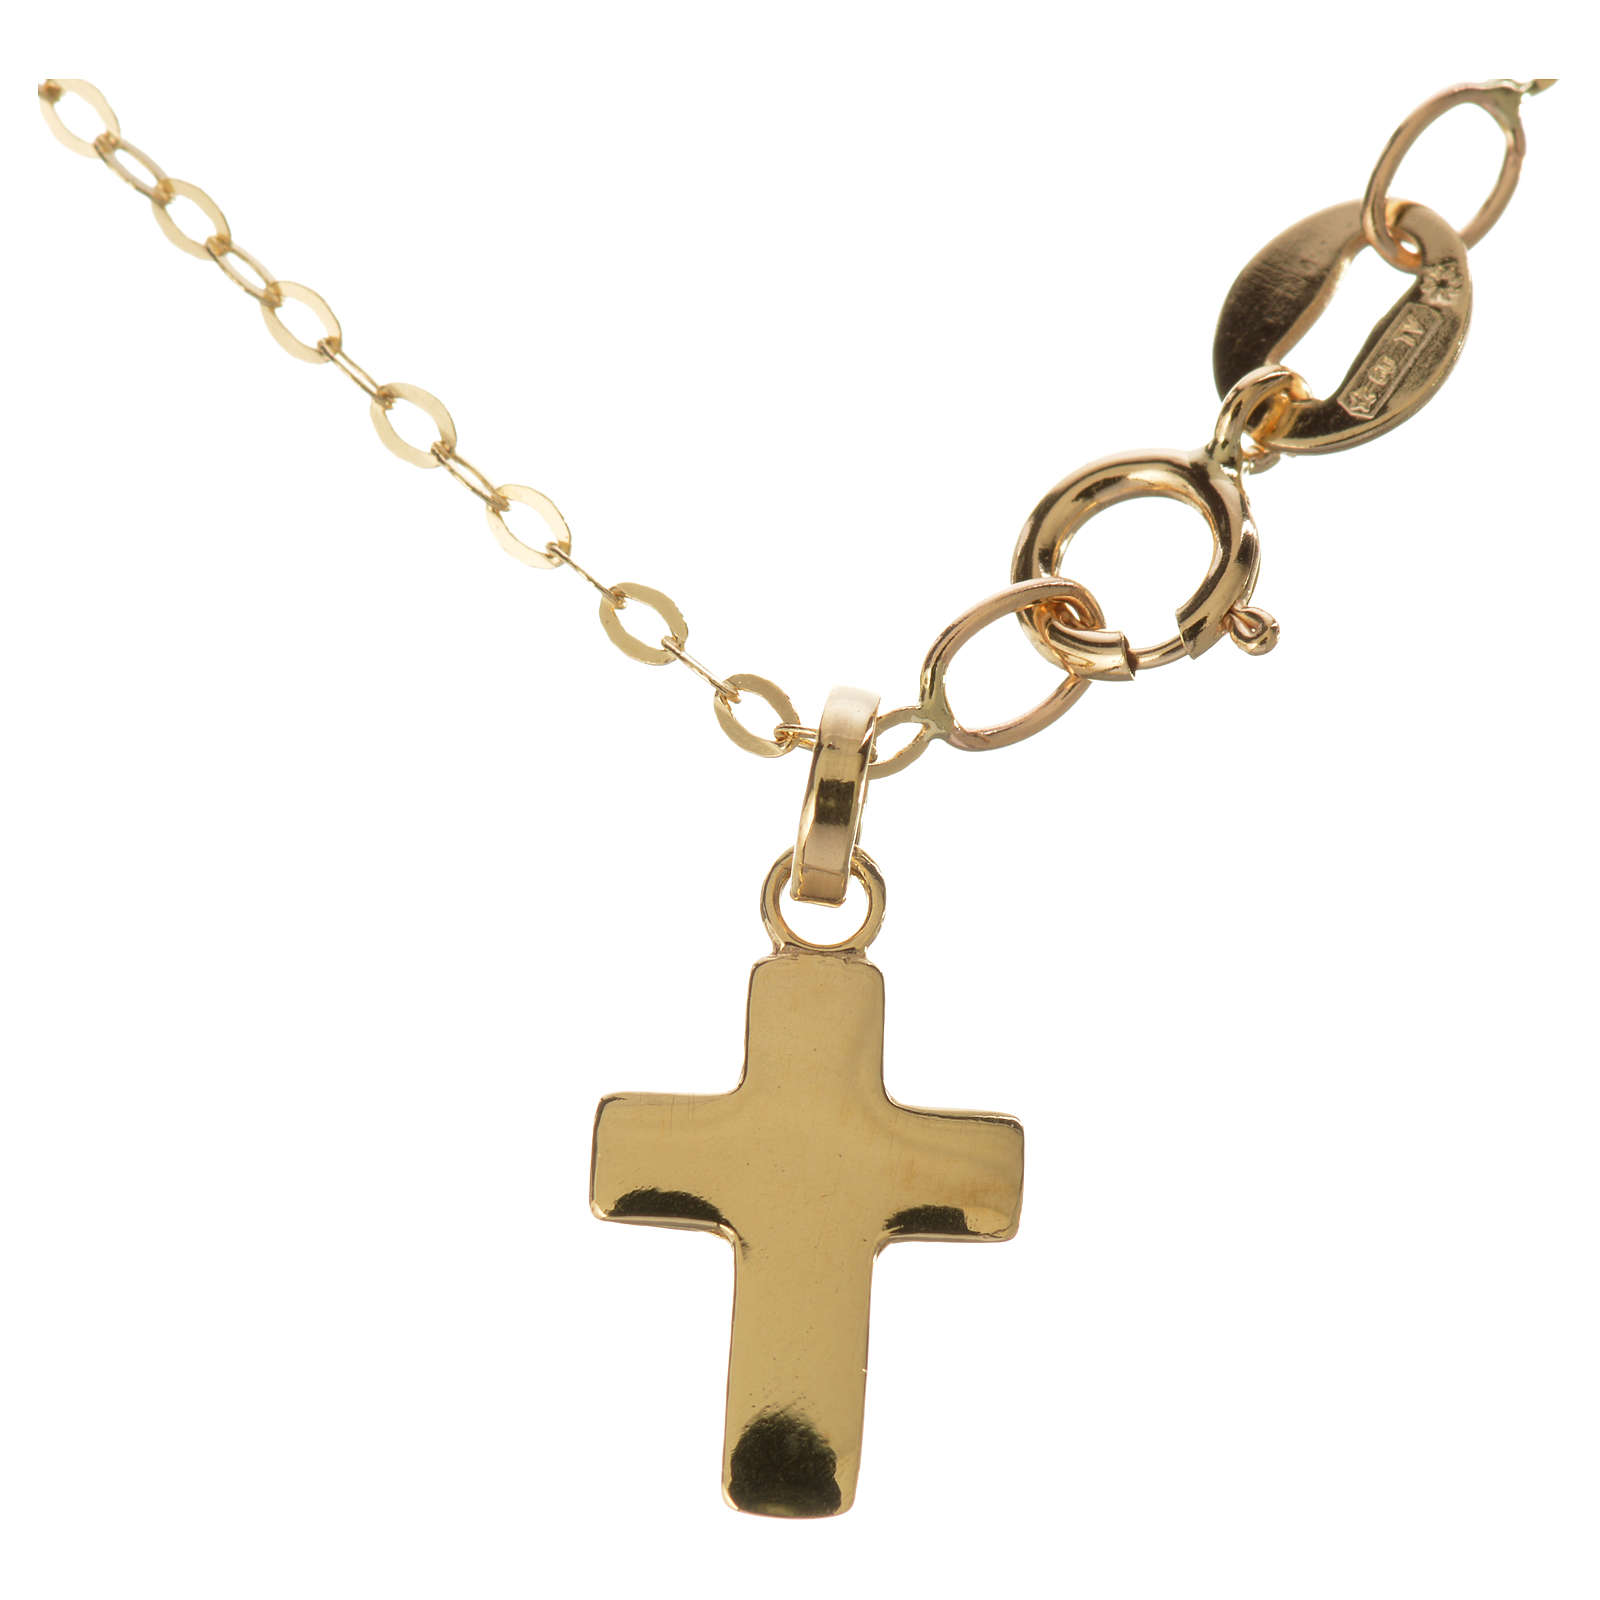 Gold chain with cross pendant, 18k 1,32 grams 4